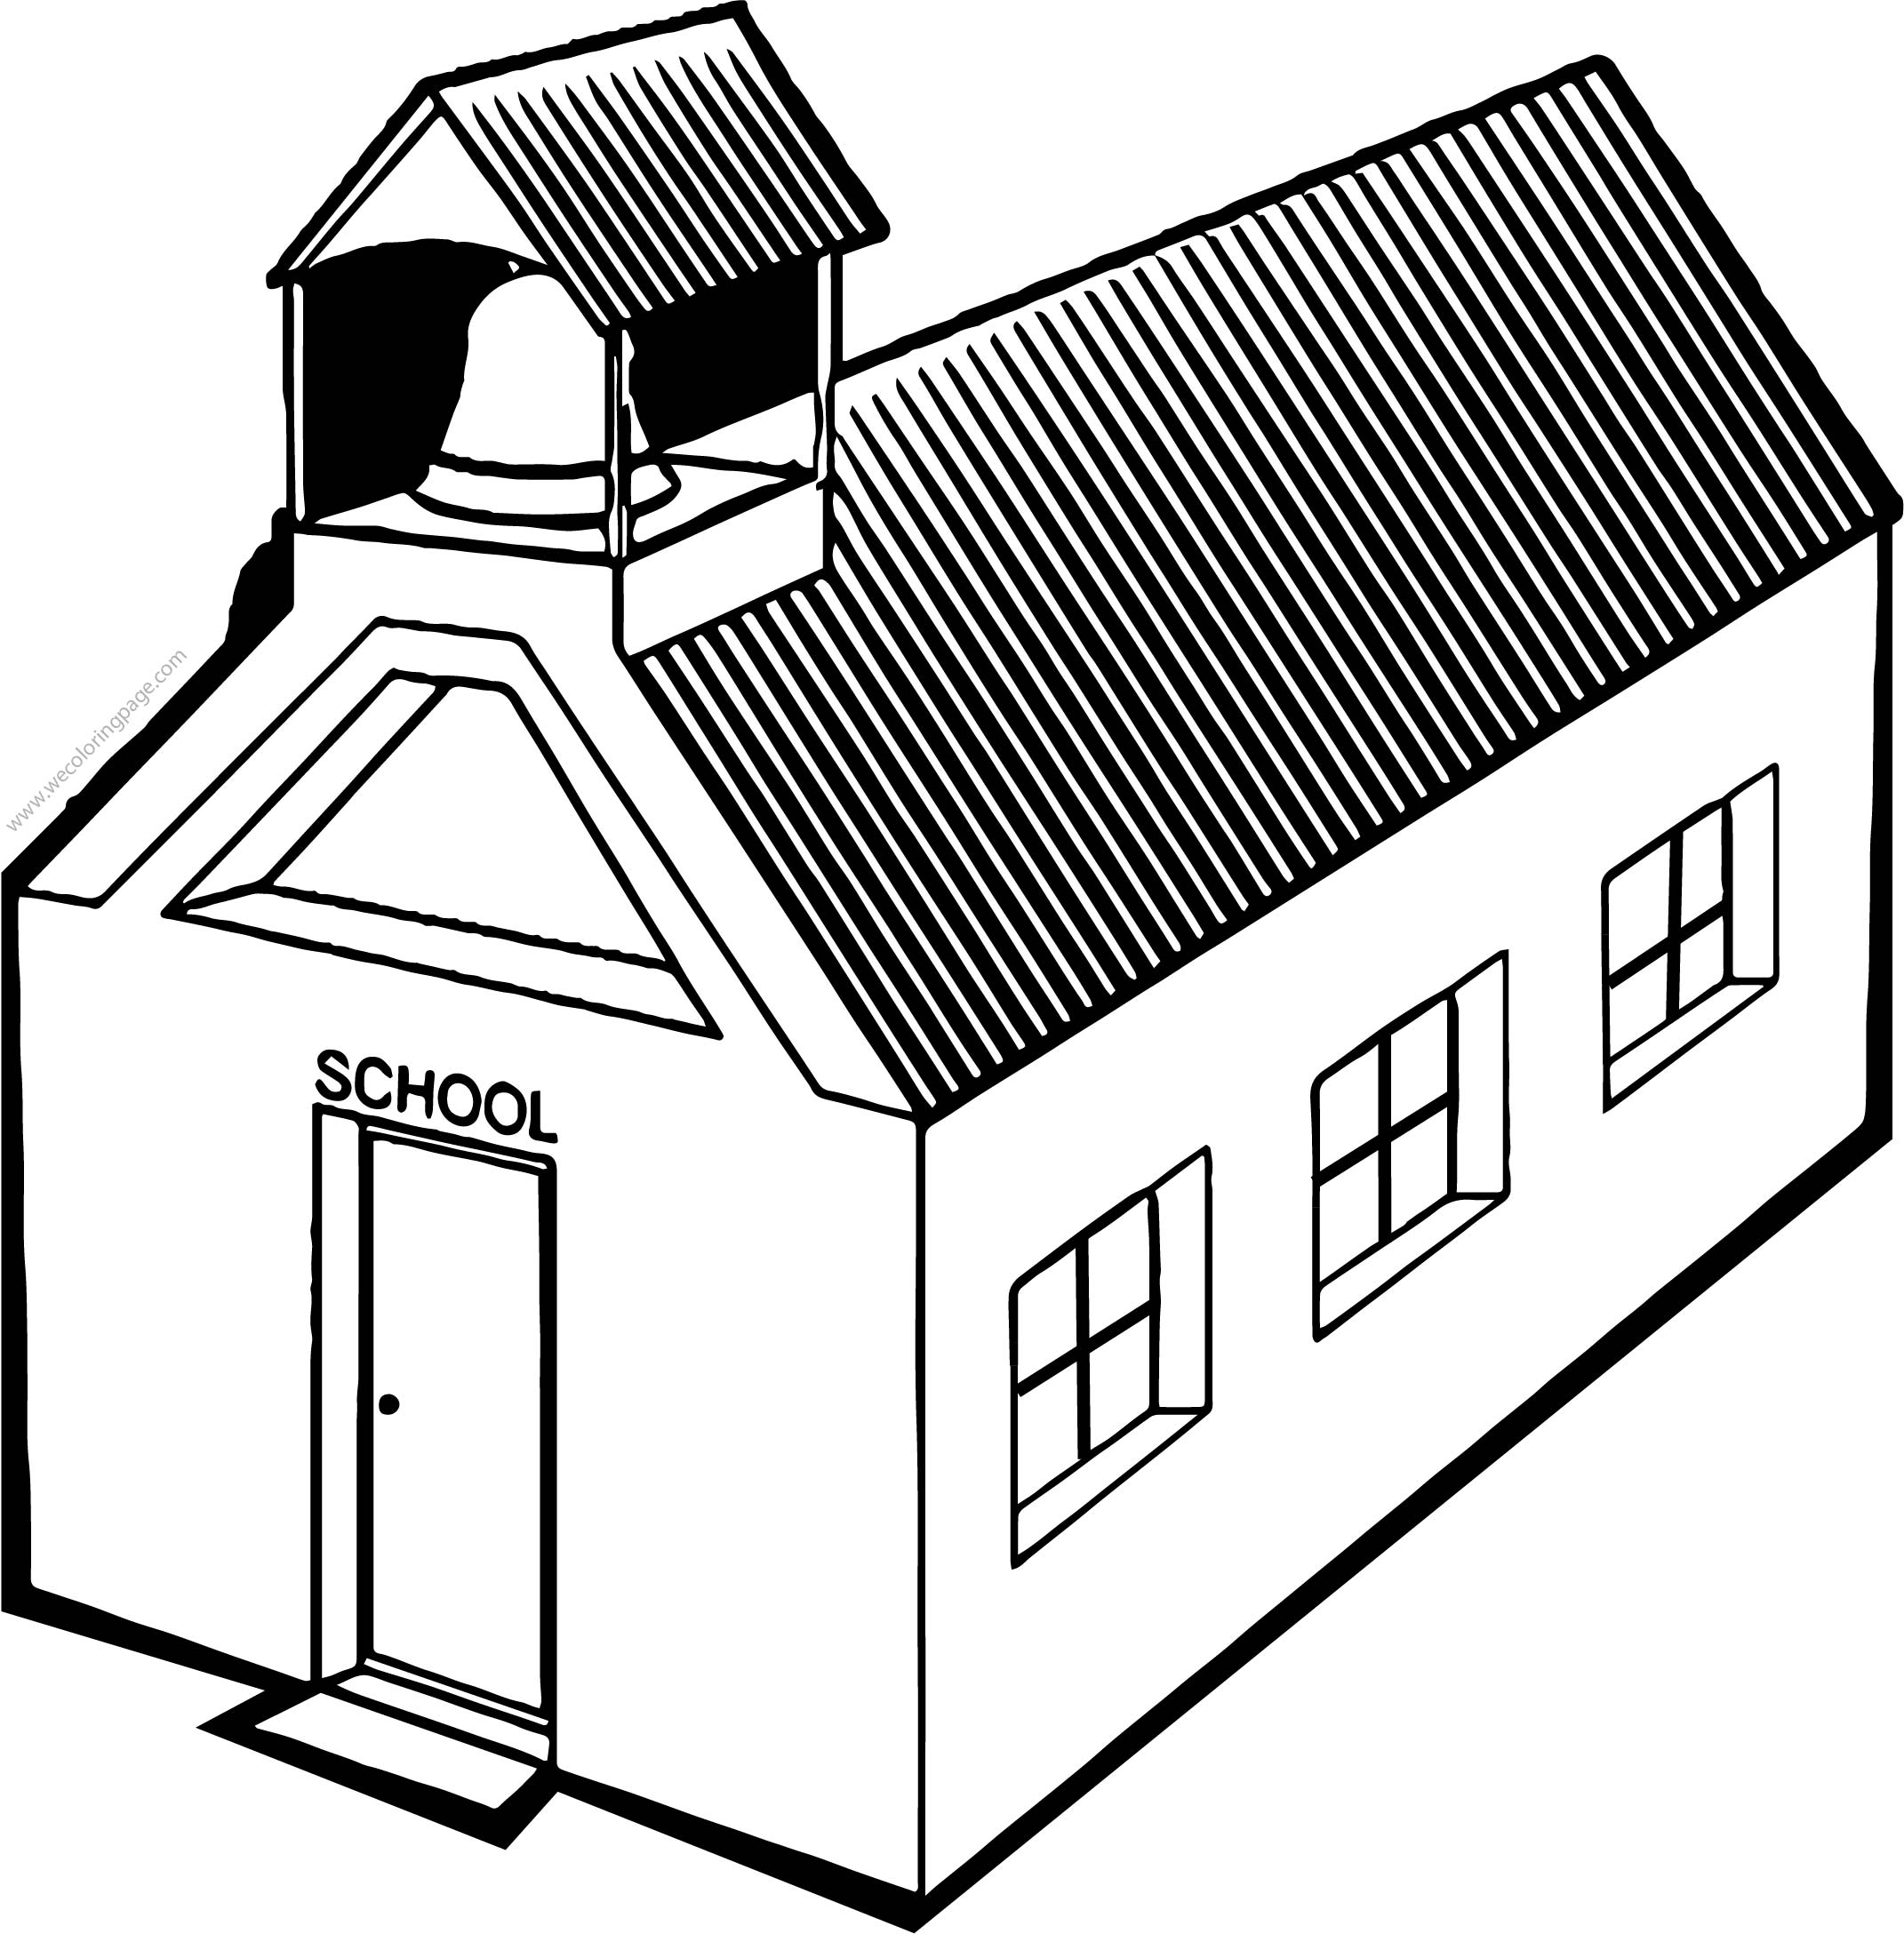 School Building Perspective Coloring Page